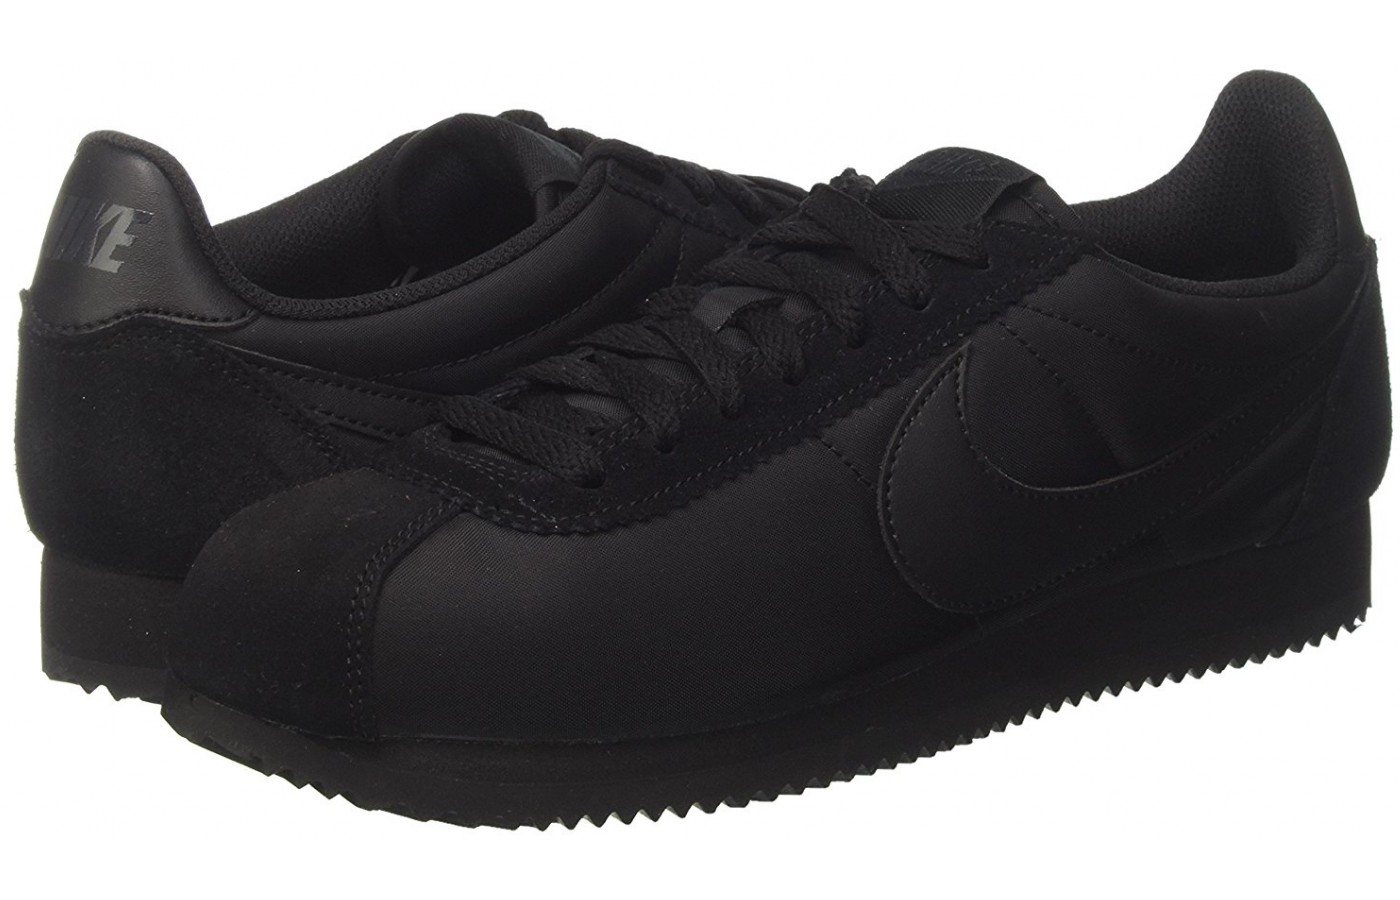 official photos b58c5 99694 ... Pair of the Nike Cortez in Black